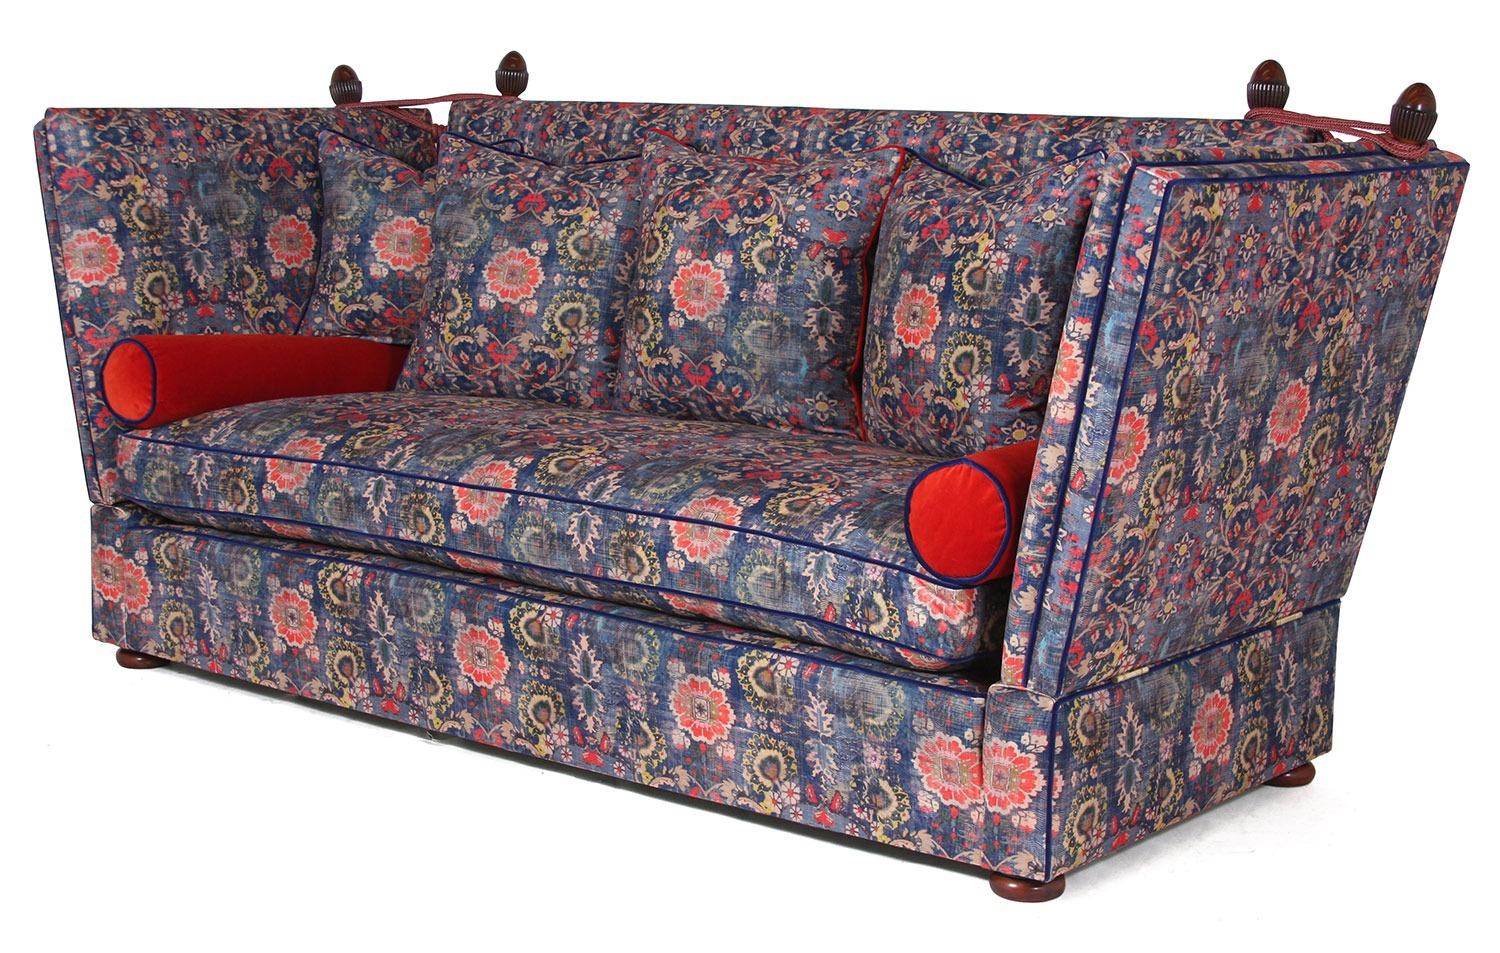 Singapore Knole 3 seat sofa in Omega Genie Blue